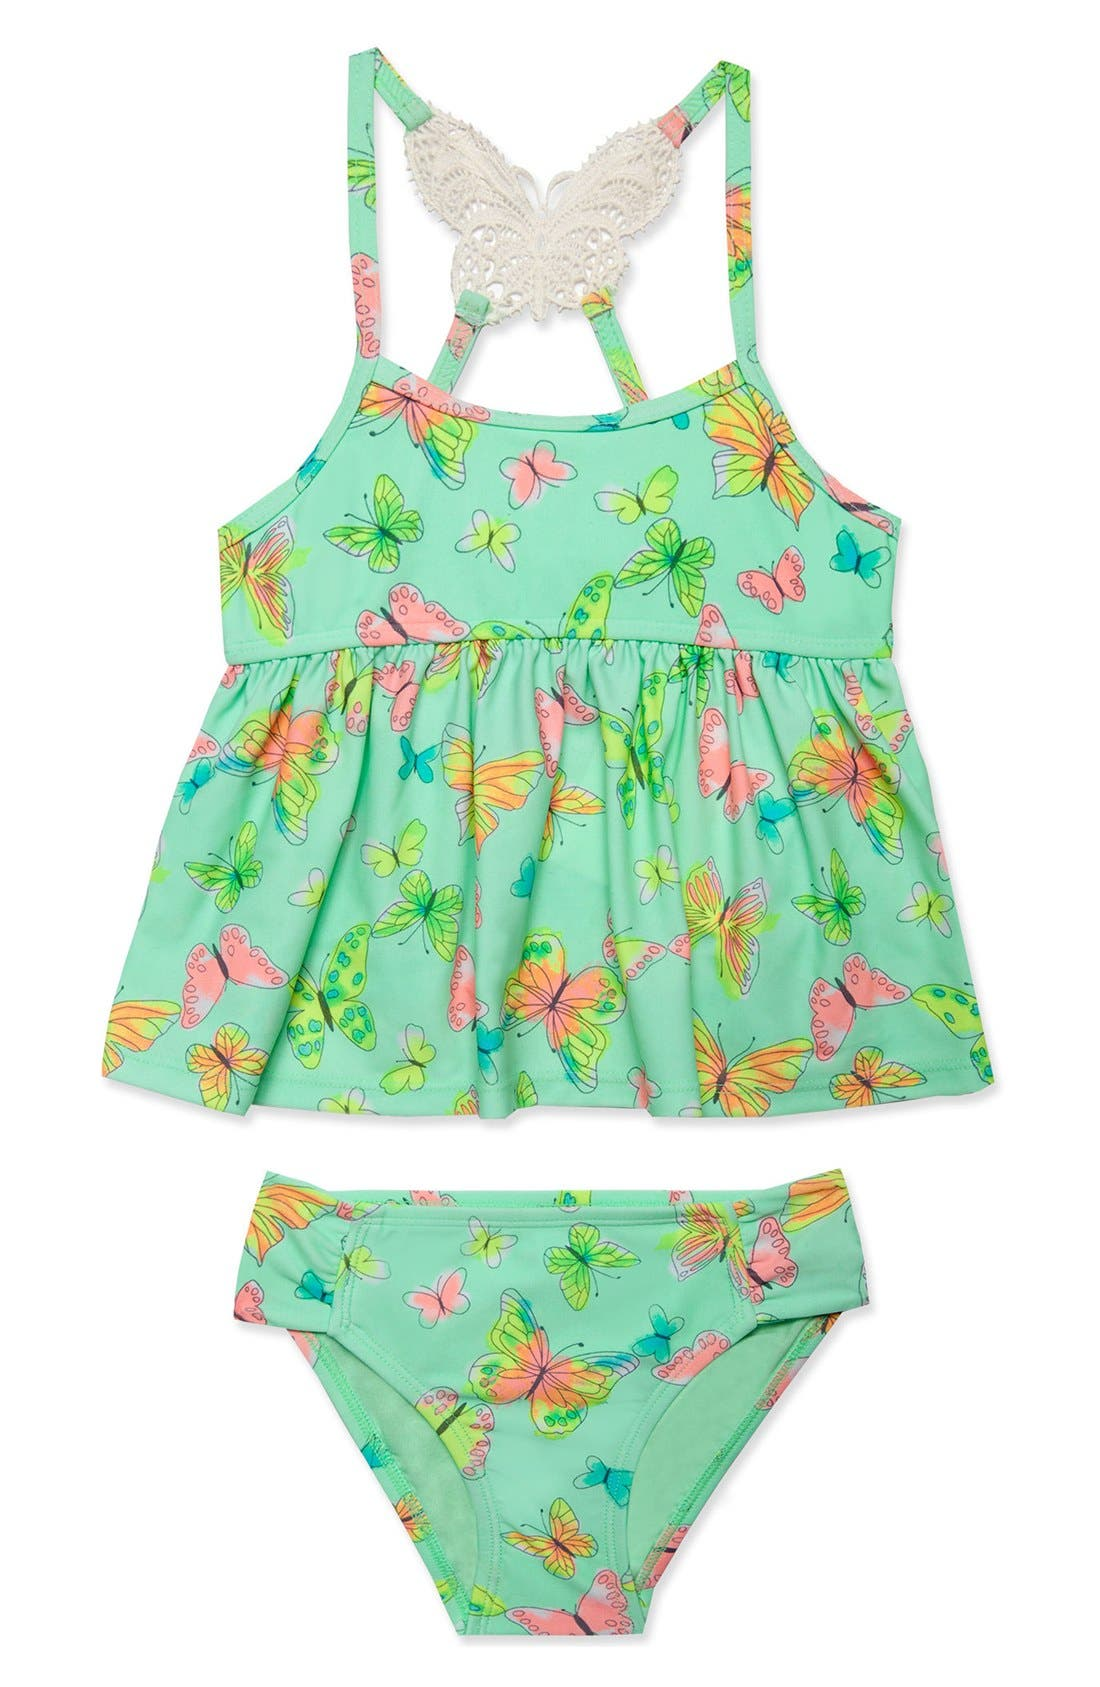 'Butterfly' Two-Piece Tankini Swimsuit,                         Main,                         color, Mint